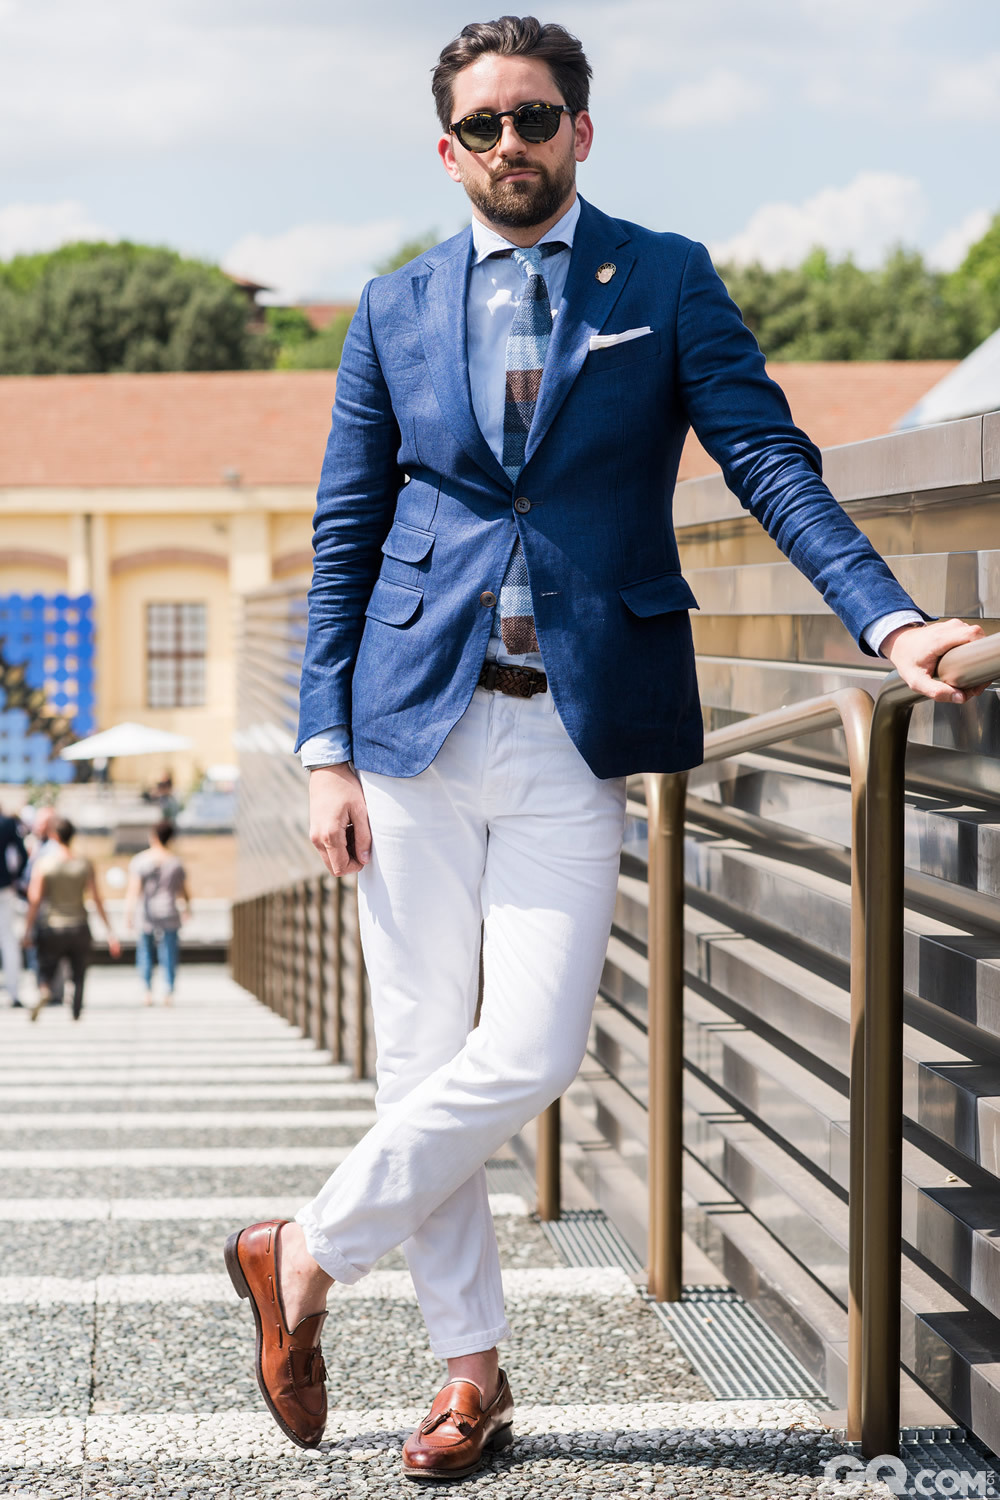 Nicholas Sunglasses: Barton Perreira Suit and shoes: Moritz Shirt, tie and pocket square: Kiton Watch: Rolex Pants: Acne  Inspiration: Comfortable but dressy! It's very difficult here. Linen jackets are the way to go in this weather. (舒适但考究,这一点非常难做到。亚麻夹克就是适应这样的天气)